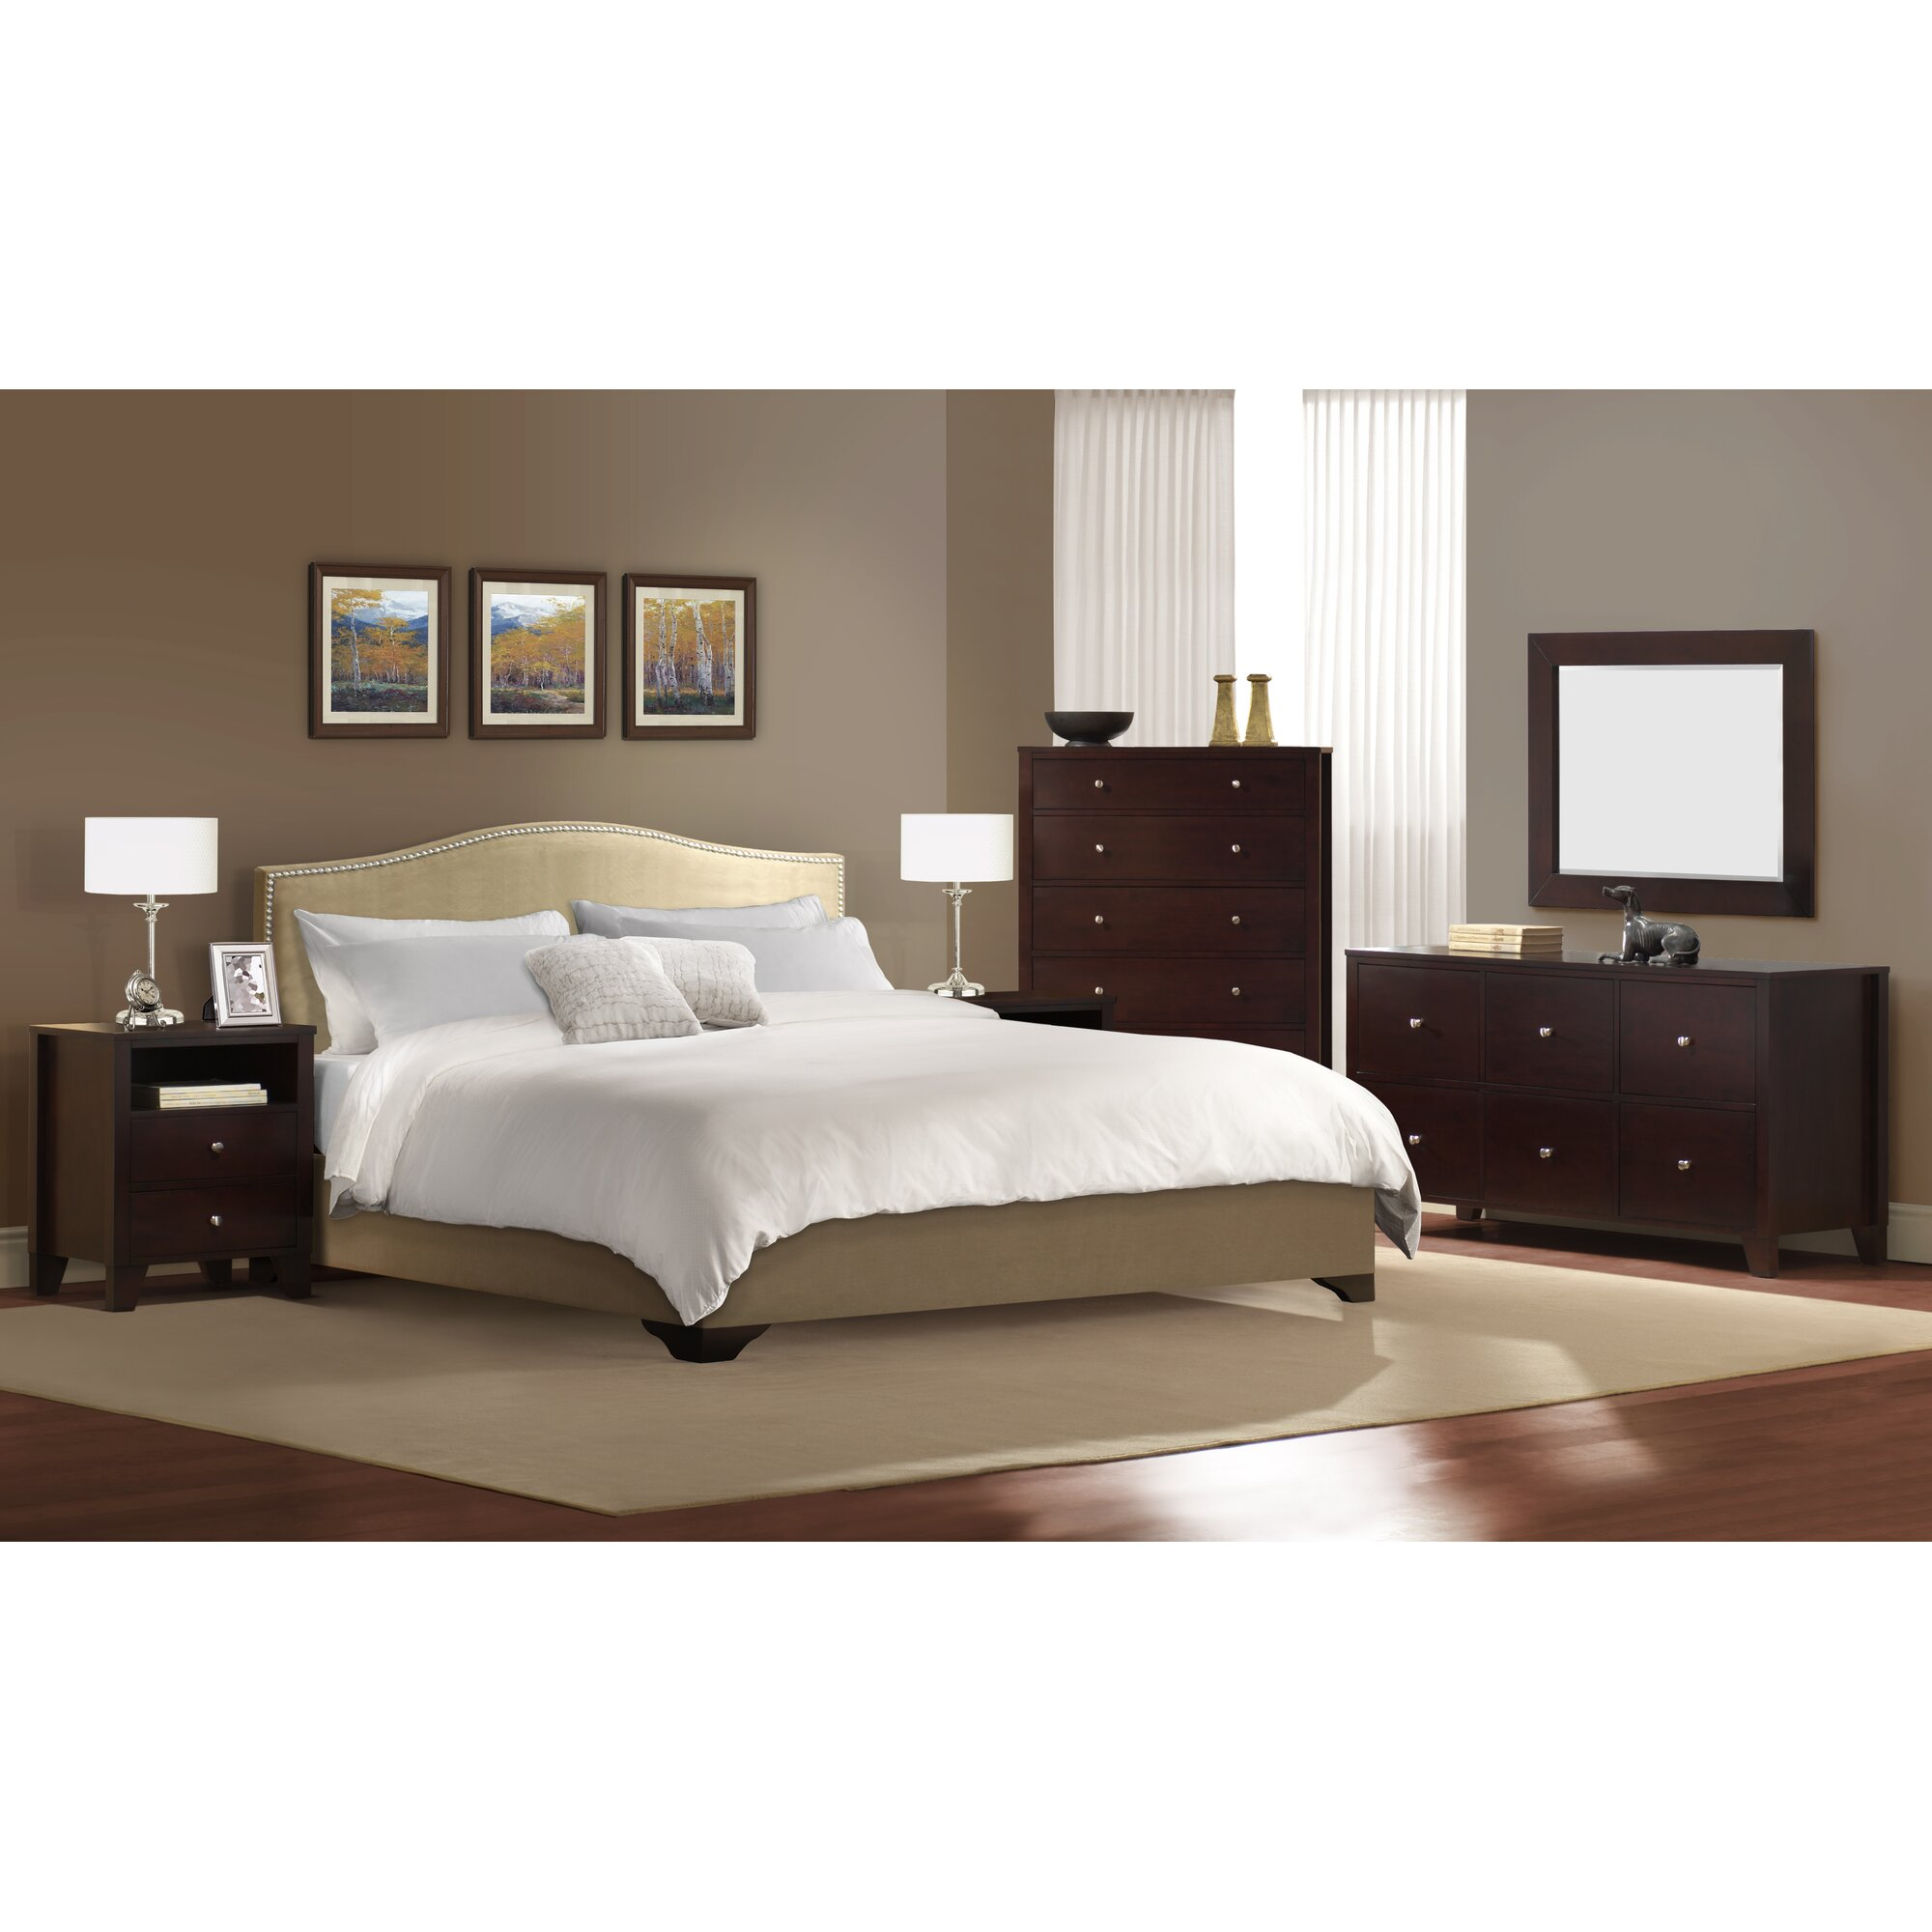 4 Piece Bedroom Set. Great 4 Piece Bedroom Set With 4 Piece ...